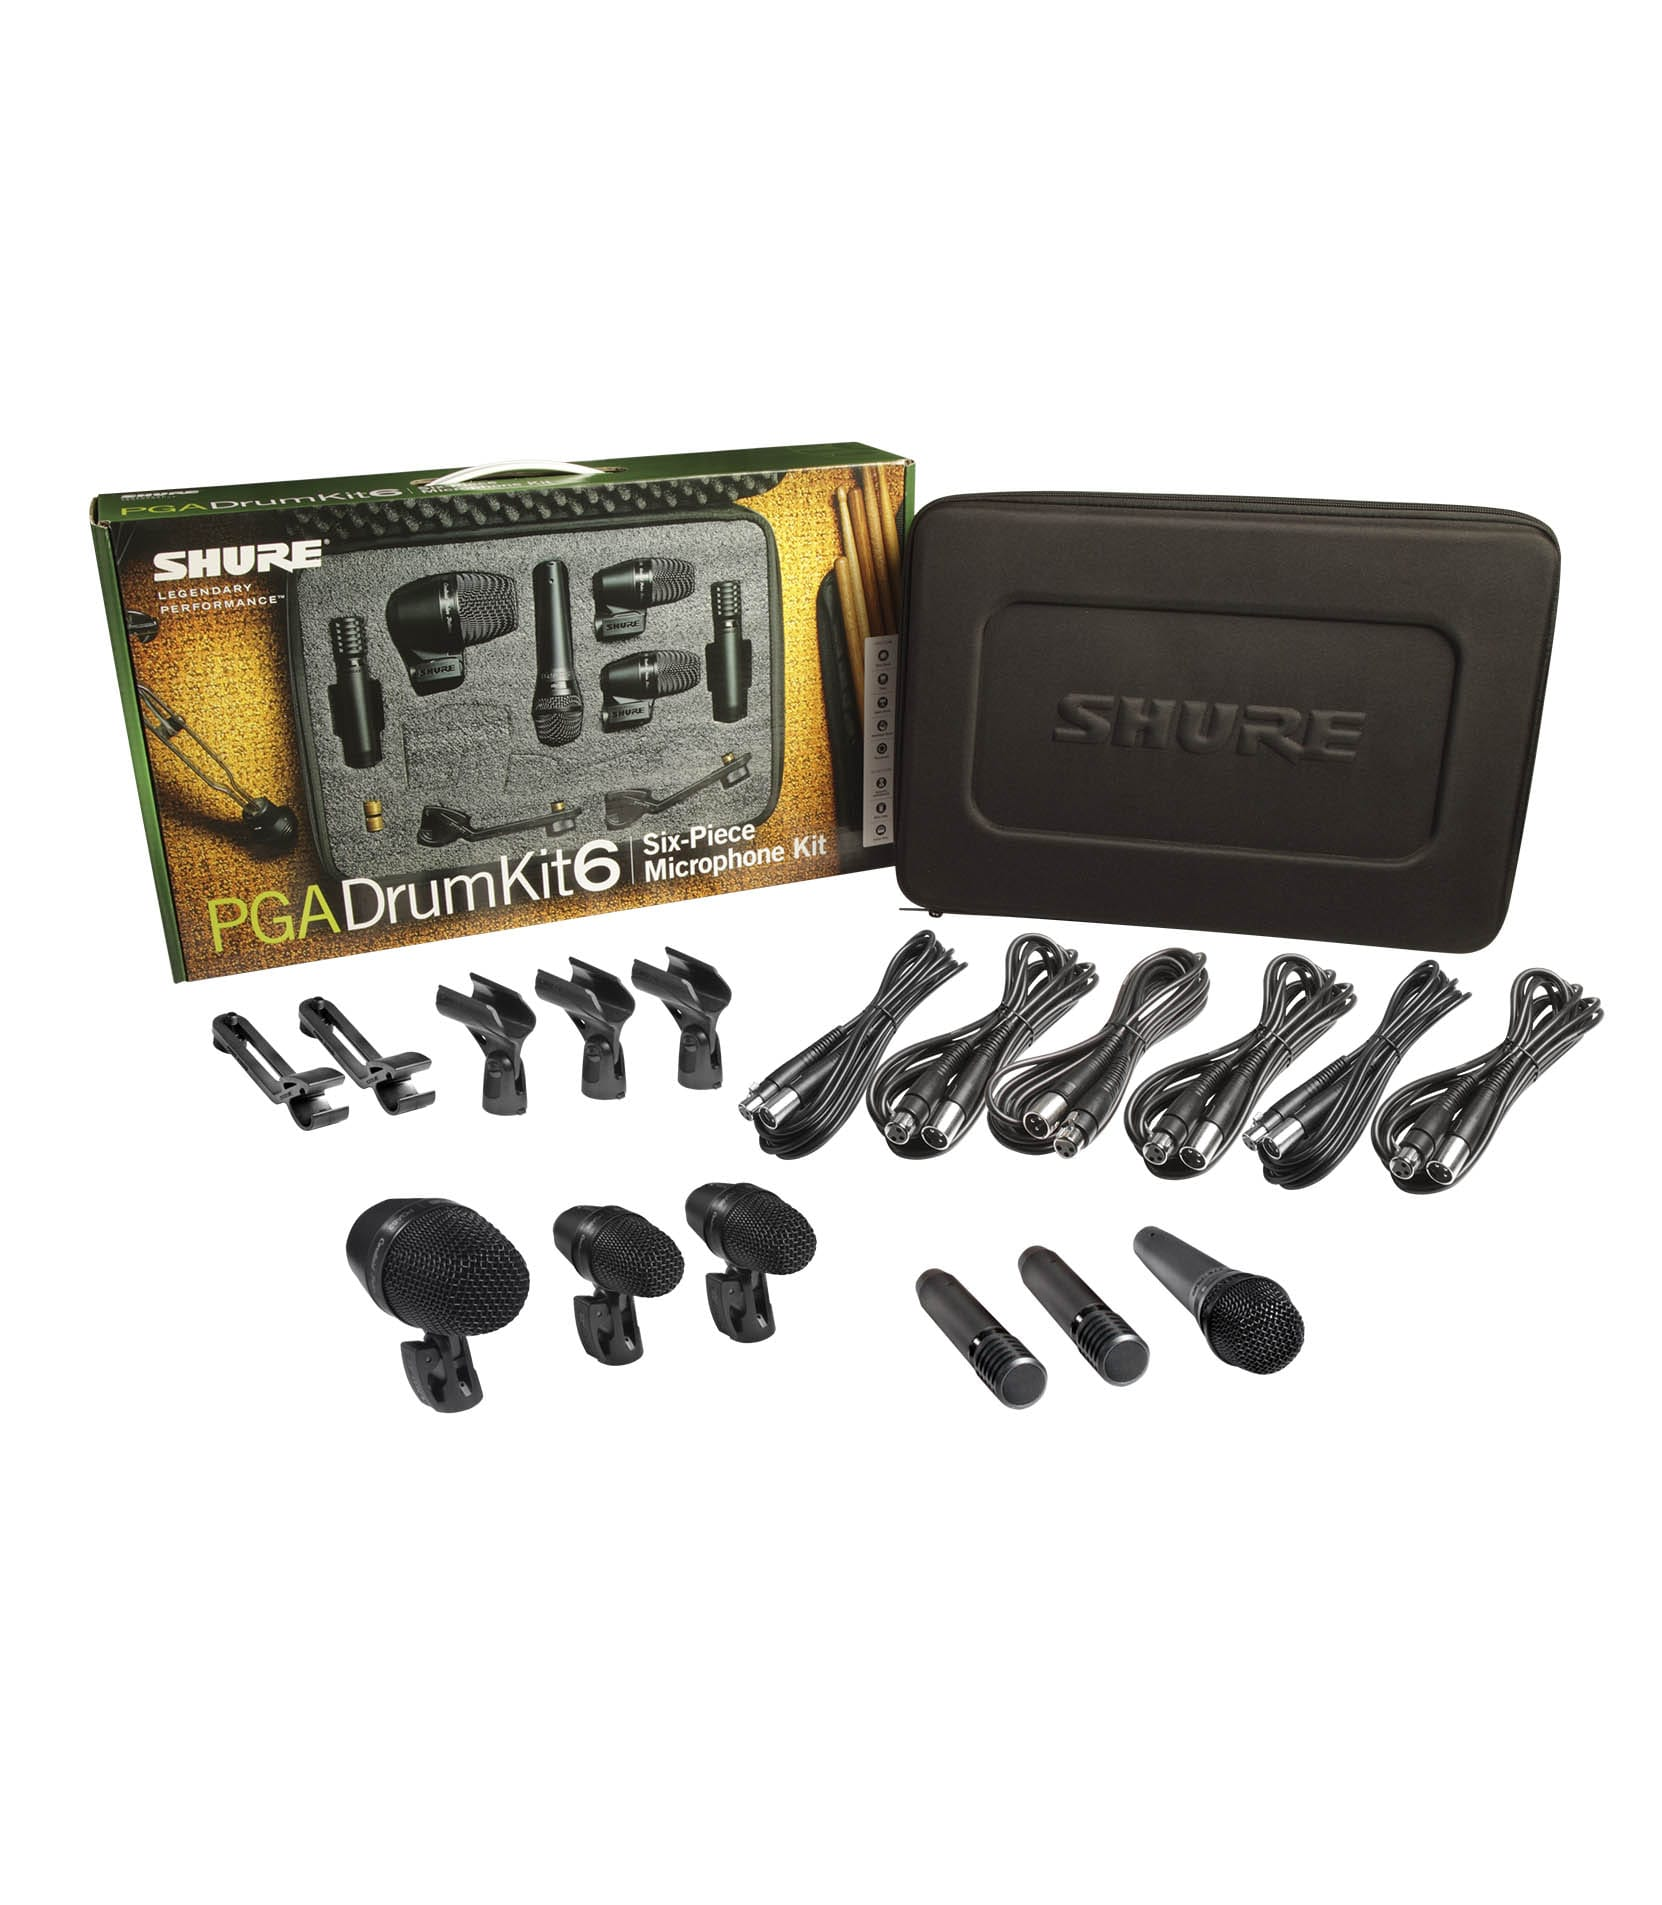 Shure - PGADRUMKIT6 6 Piece Drum Microphone Kit - Melody House Musical Instruments